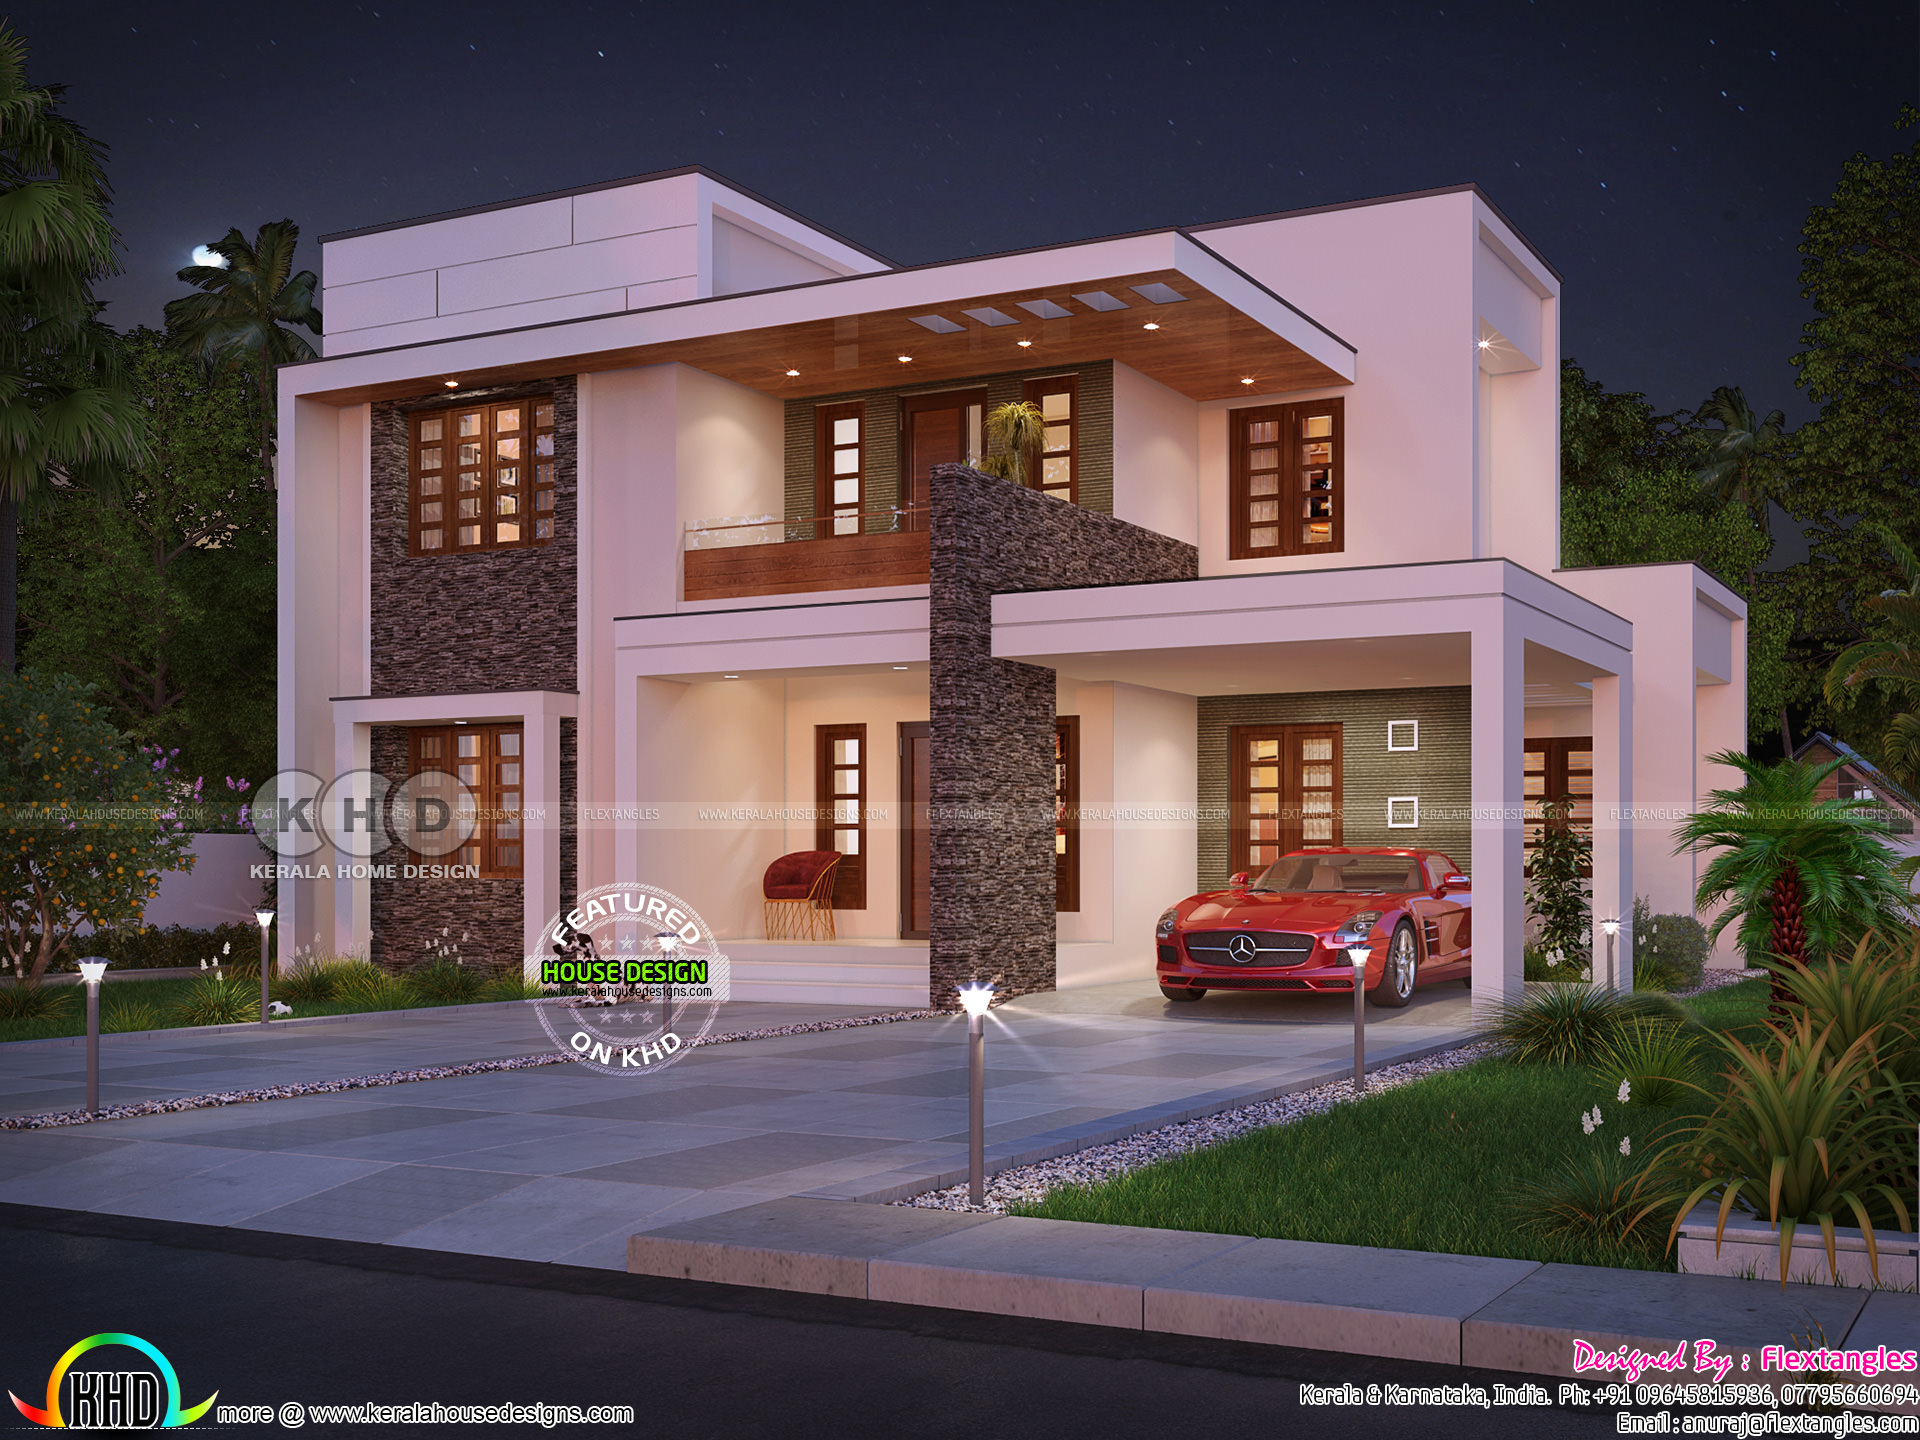 2165 Sq Ft 4 Bedroom Contemporary Flat Roof House Kerala Home Design And Floor Plans 8000 Houses